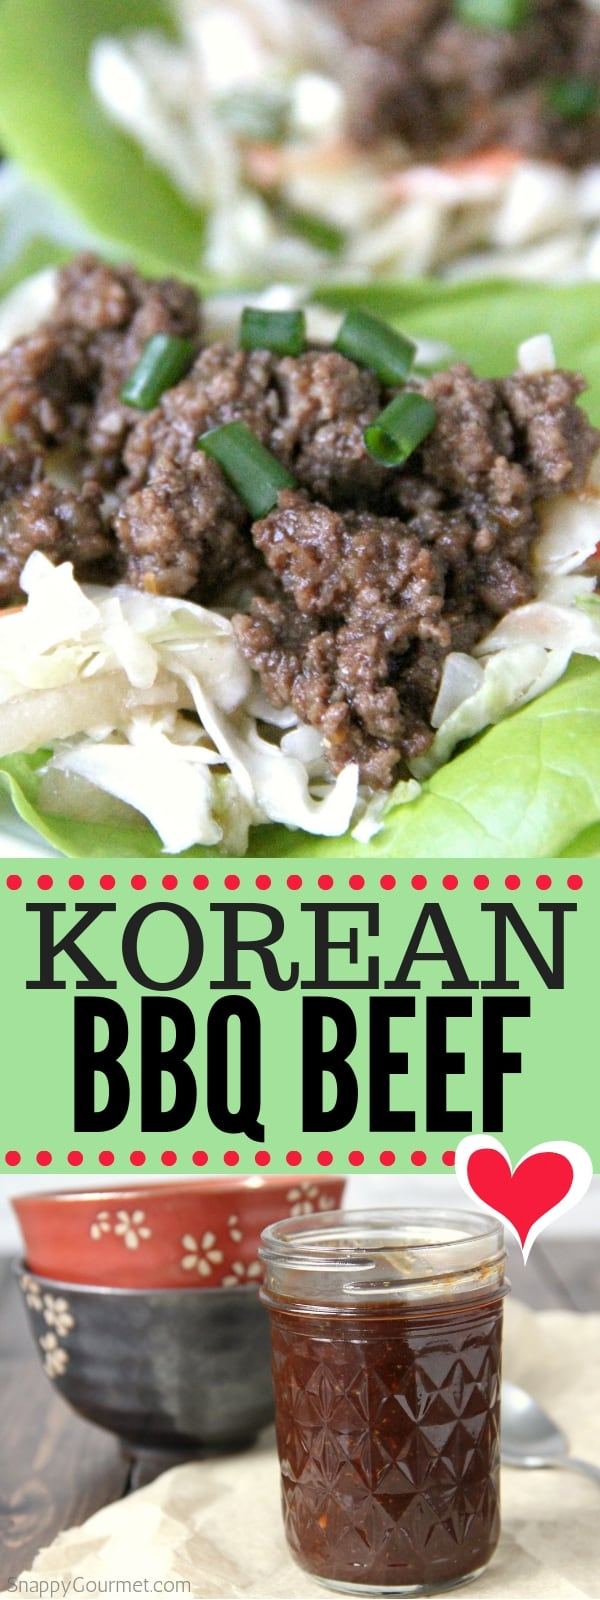 Korean BBQ Beef collage